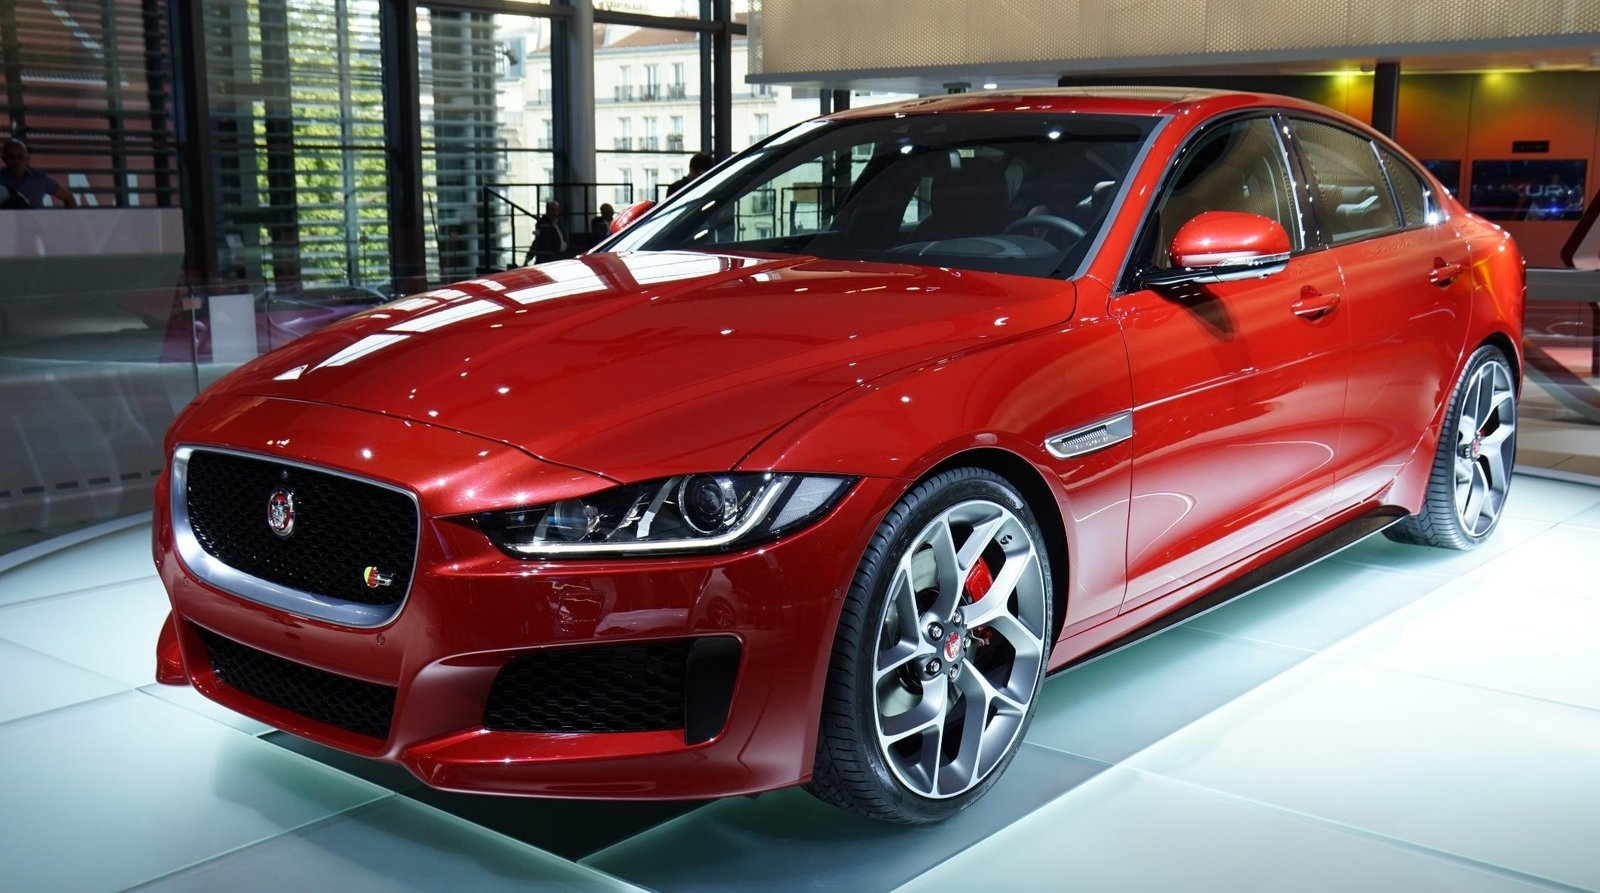 2017 jaguar xe picture 571331 car review top speed. Black Bedroom Furniture Sets. Home Design Ideas